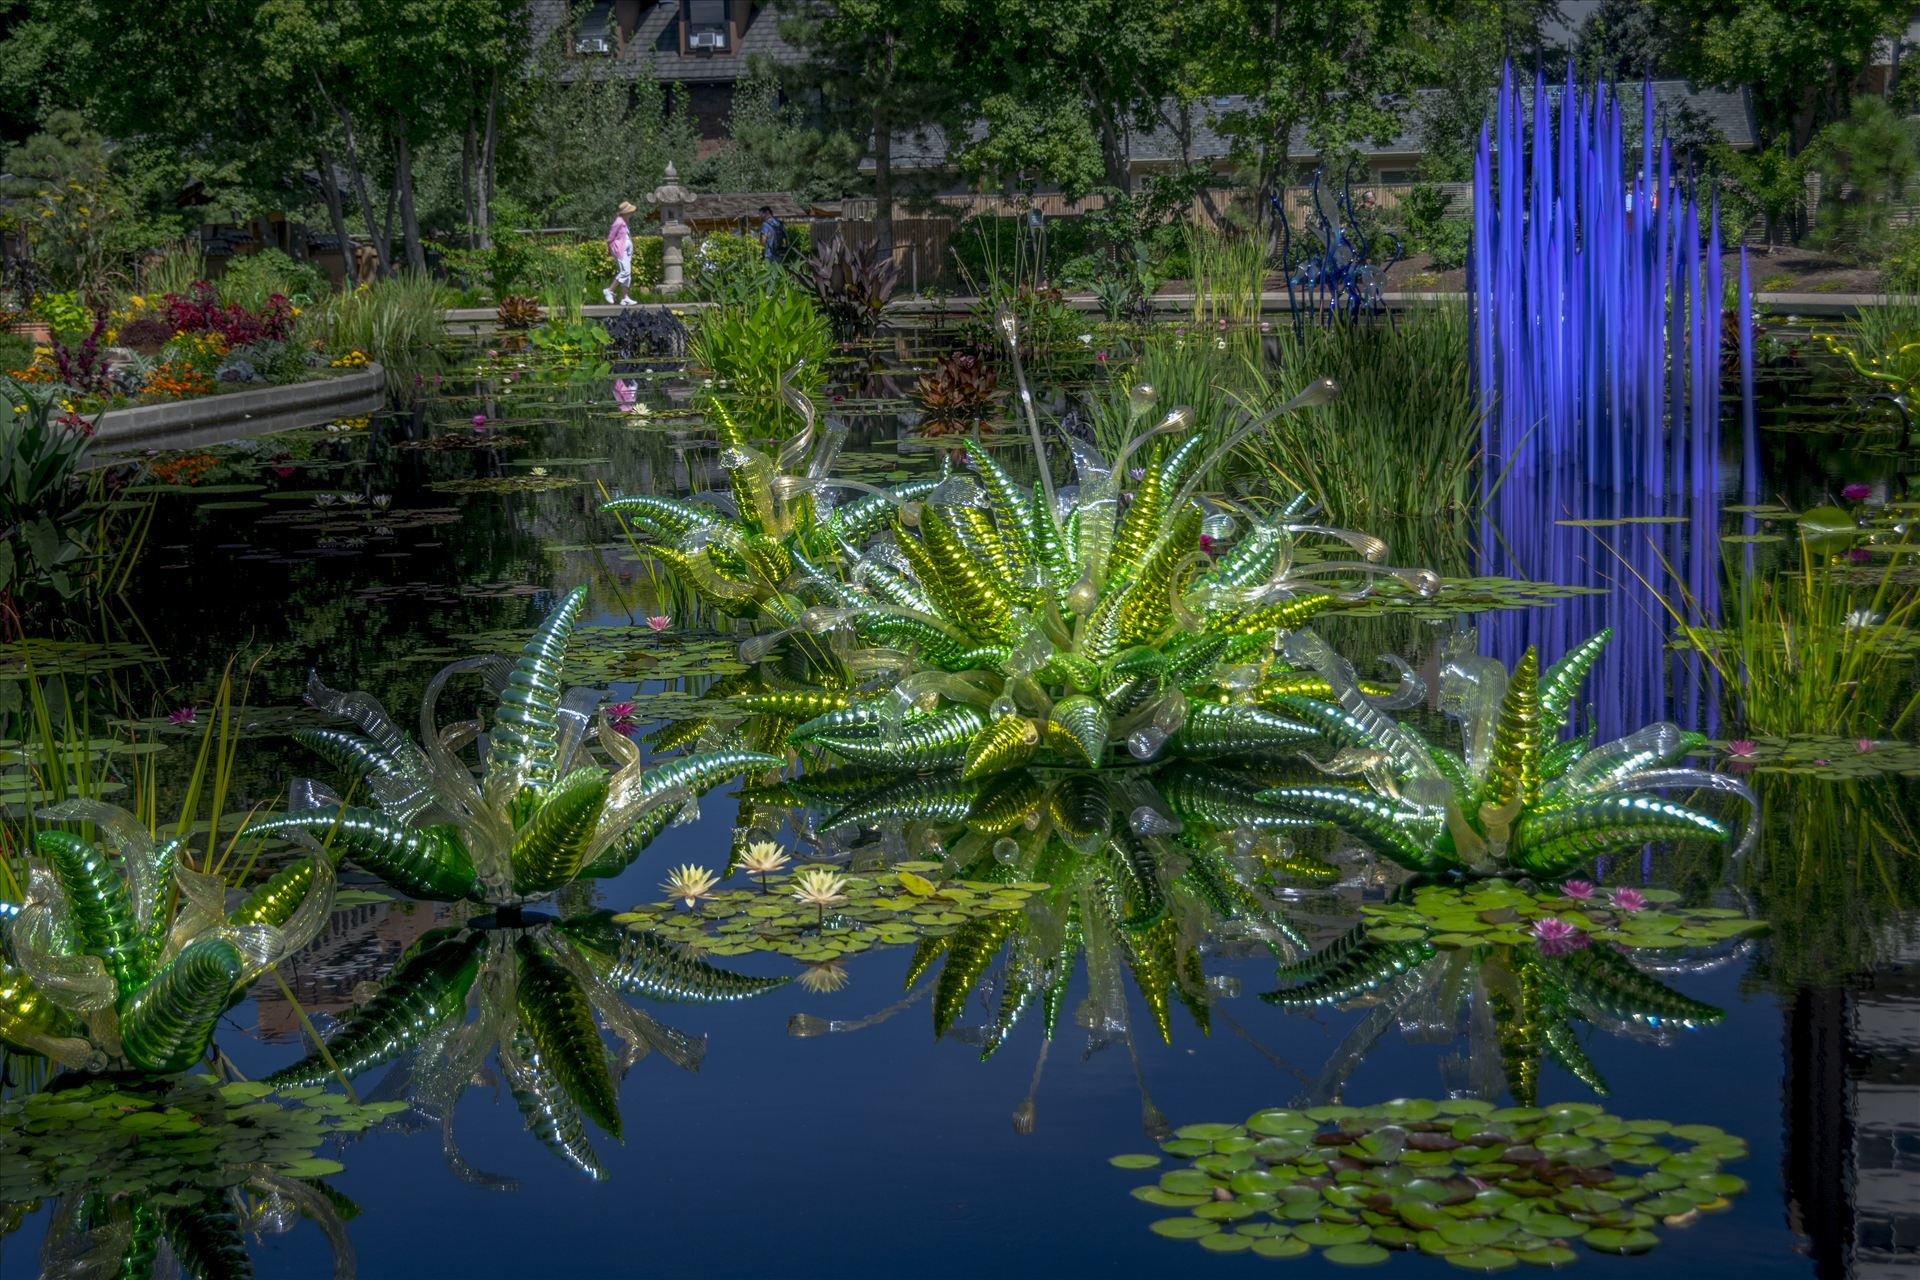 Chihuly Pond 2.jpg -  by Dennis Rose